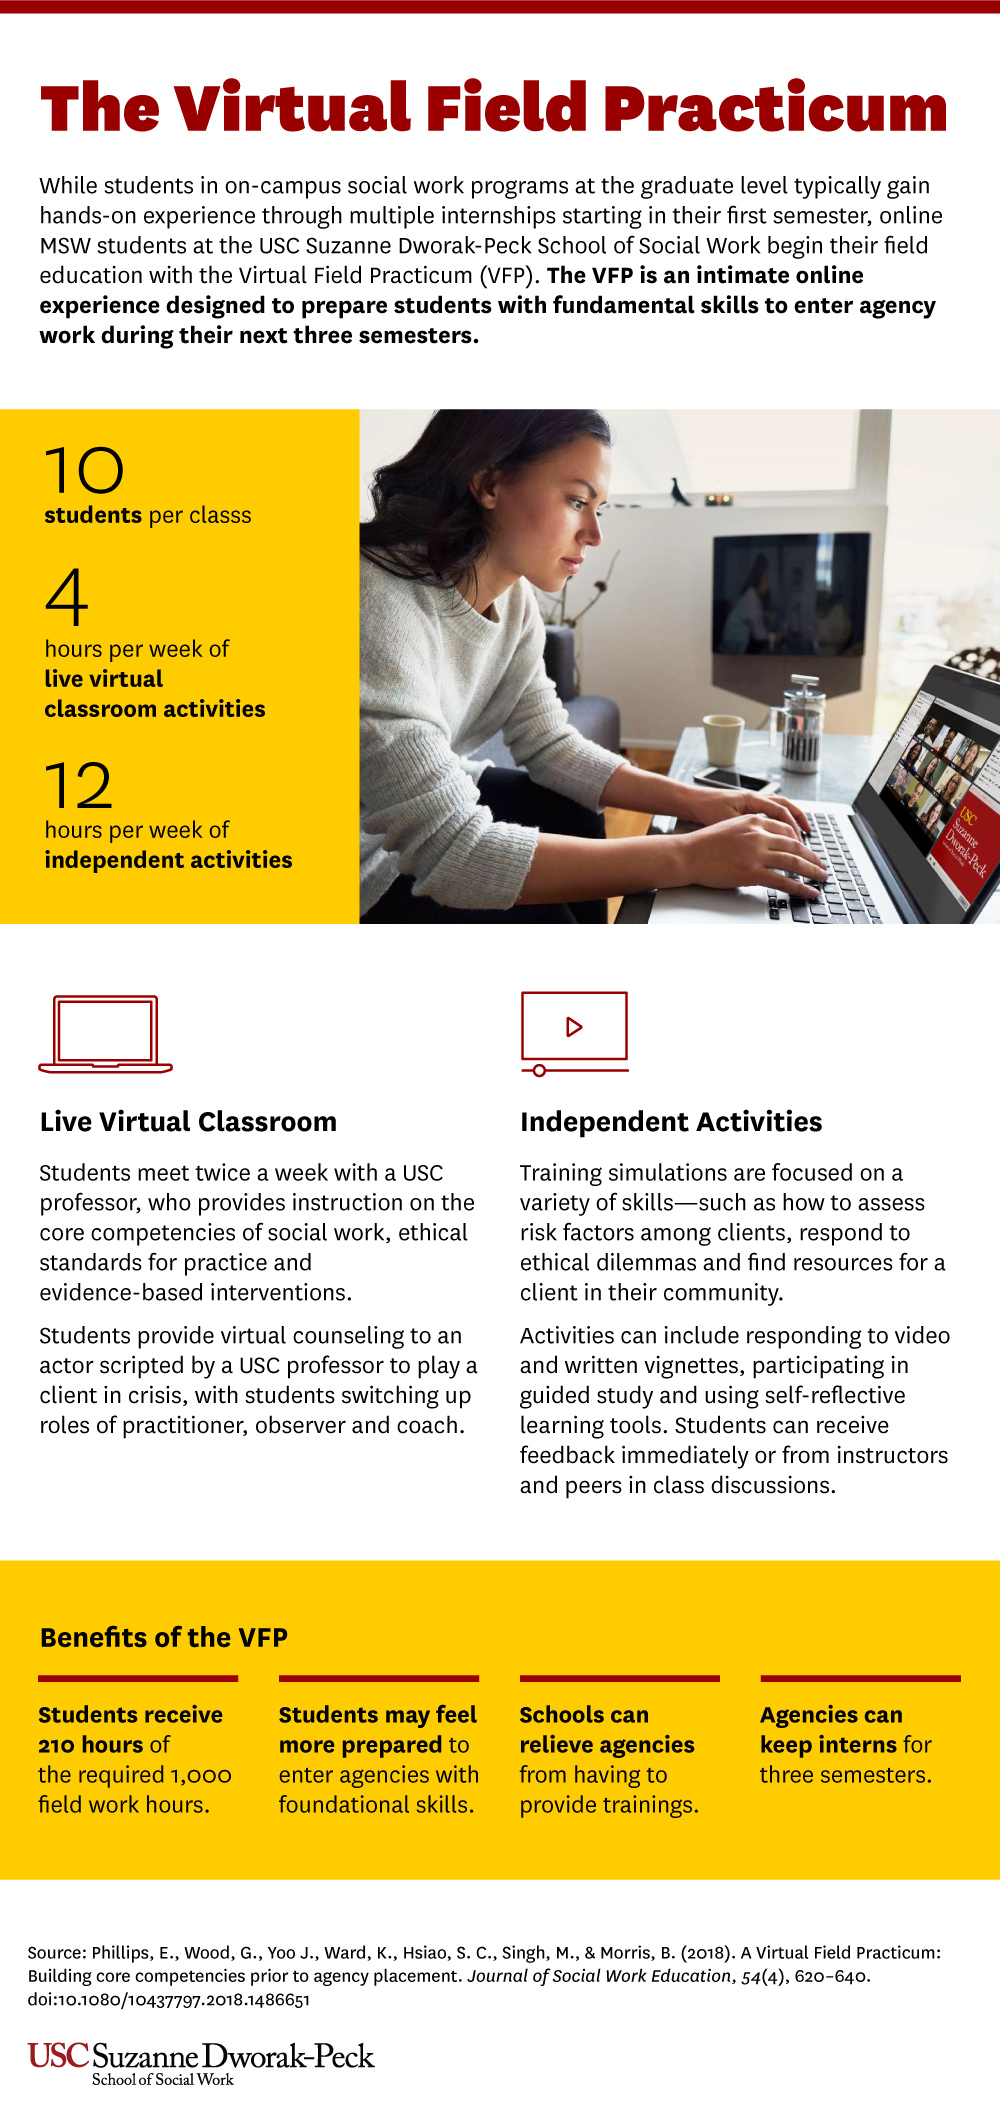 Infographic explaining the components and benefits of the Virtual Field Practicum.